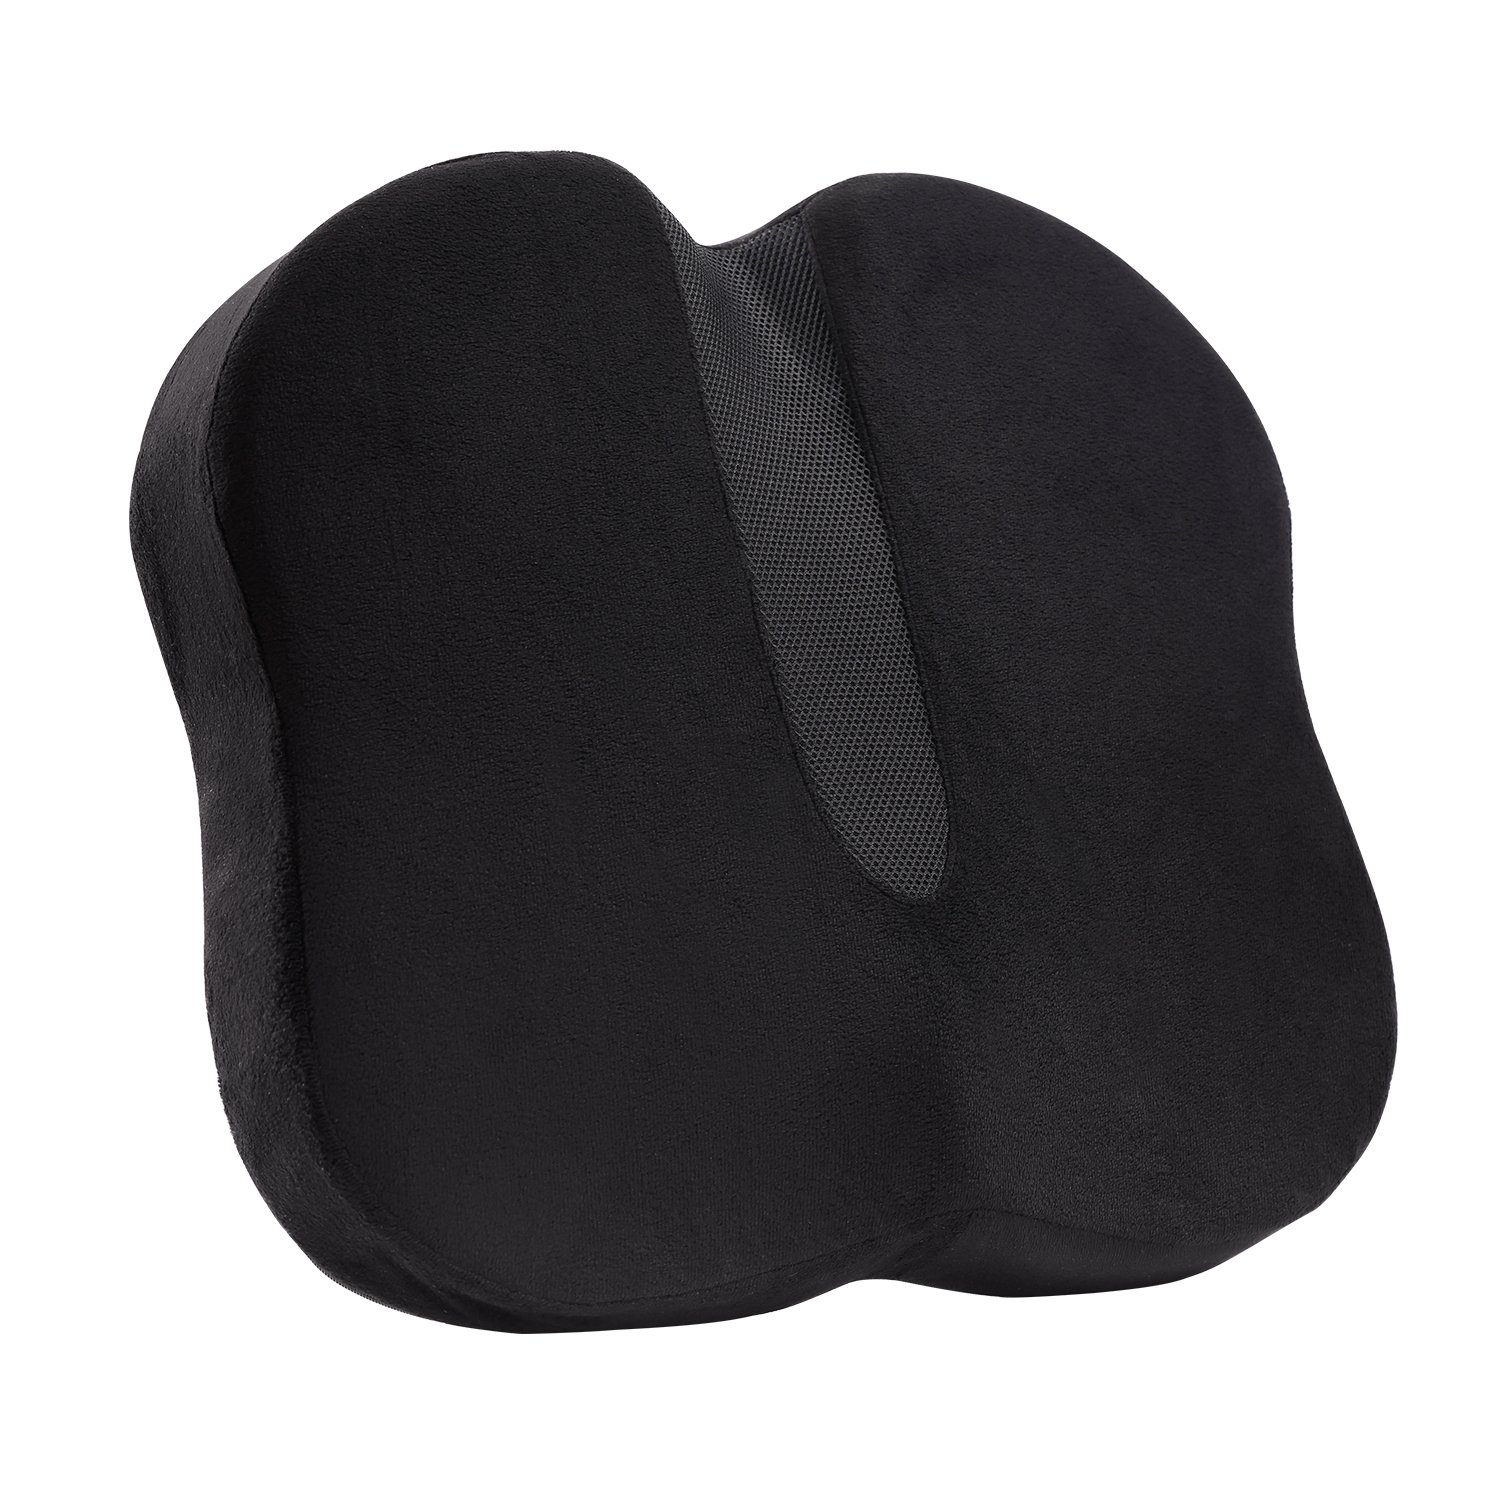 Luxspire Coccyx Orthopedic Seat Cushion, Memory Foam Ergonomic Contoured Seat Cushion Lumbar Support Cushion Pillow Relieves Back Pain, Sciatica and Tailbone Pain, for Office Chair, Car Seat, Black